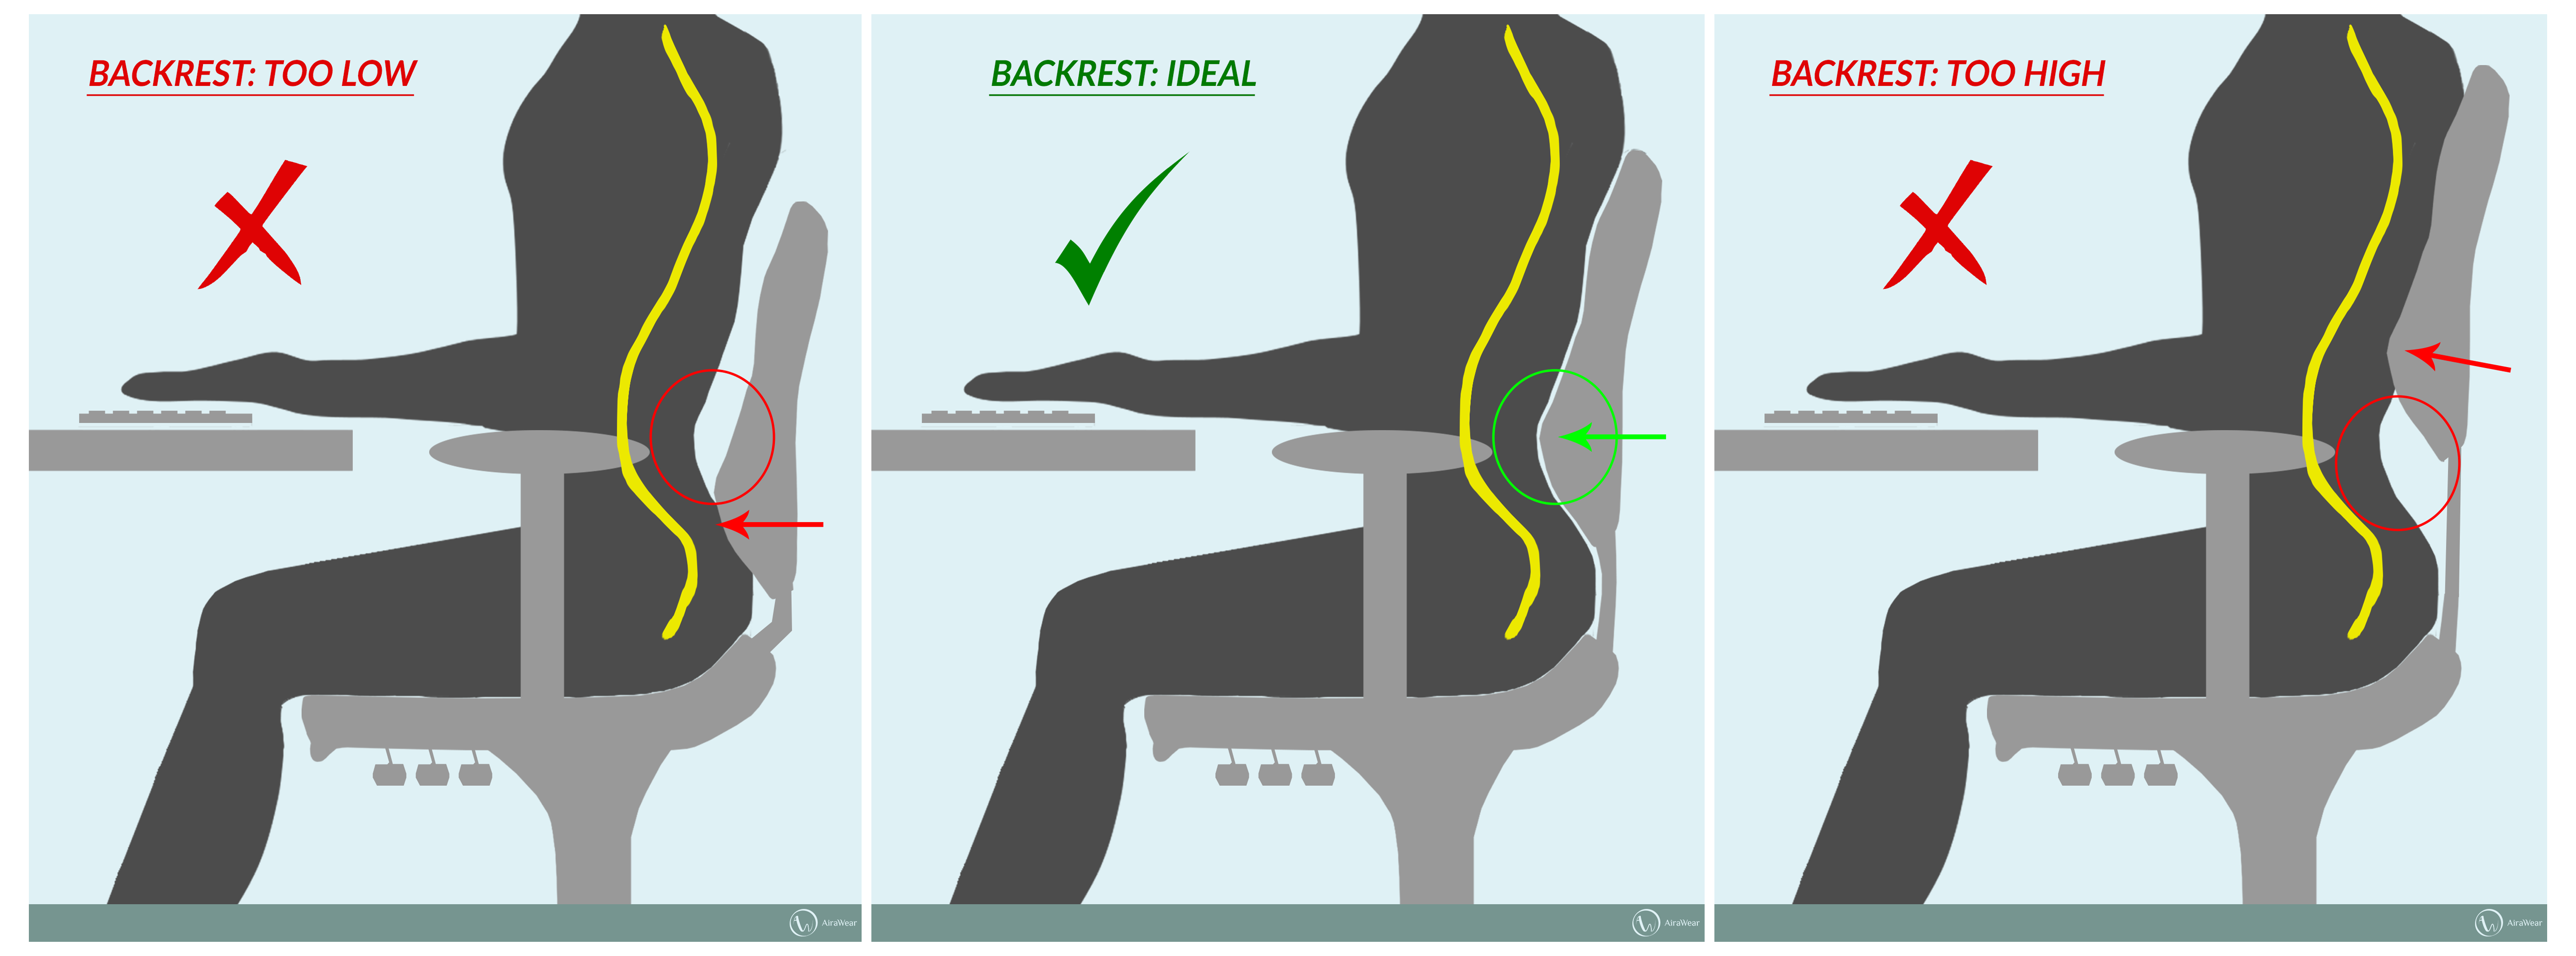 Best Office Chairs For Lower Back Pain Dorm Chair Covers Etsy Find The Ergonomic Lumbar Pelvic And Neck Relief To Give You Sitting Comfort All Day At Work